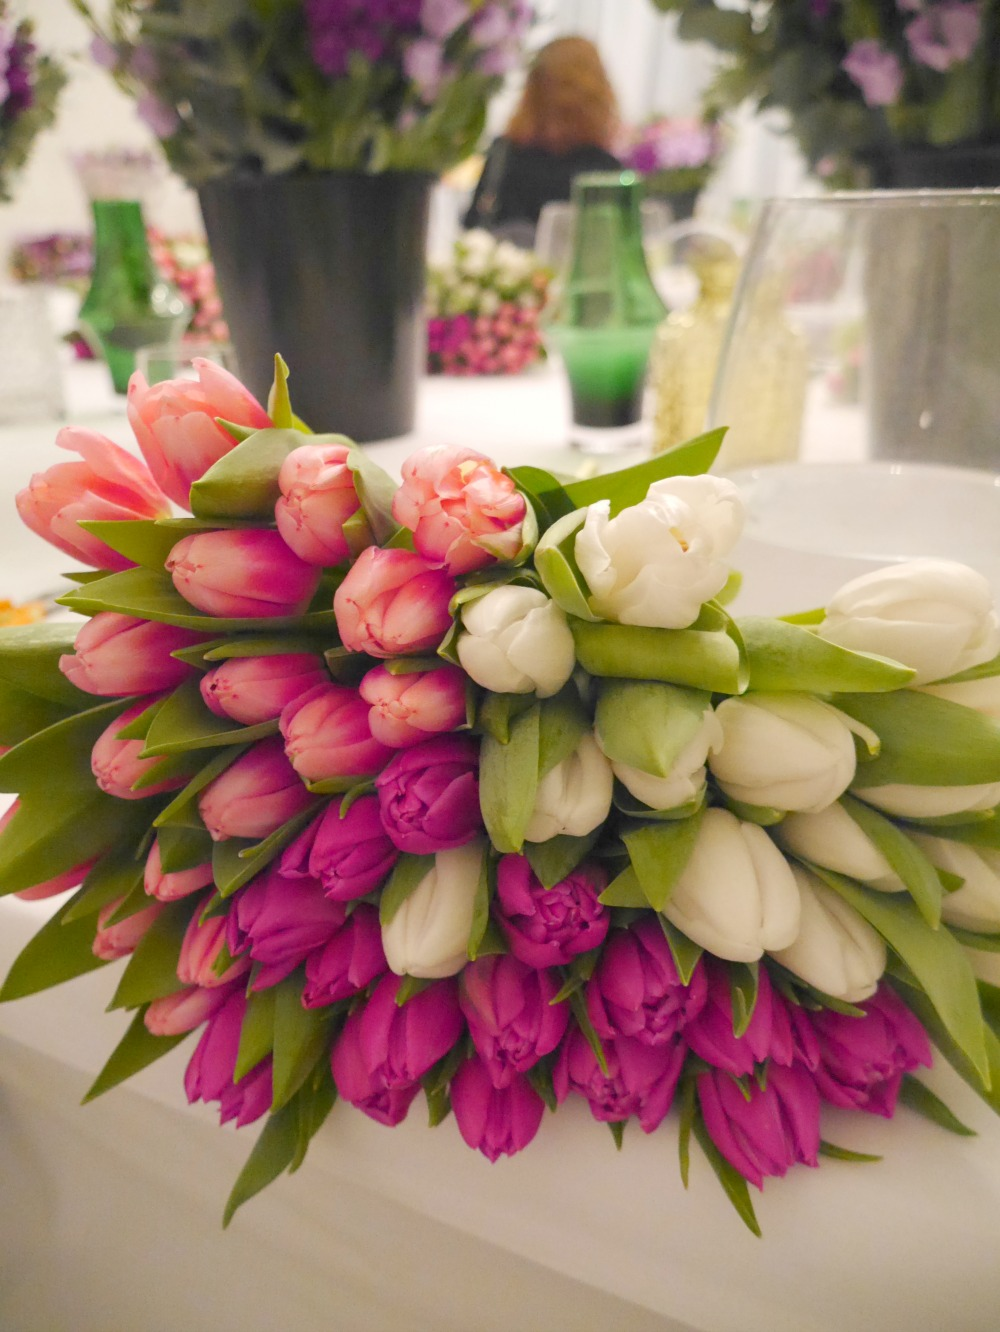 Flower arranging - M&S masterclass